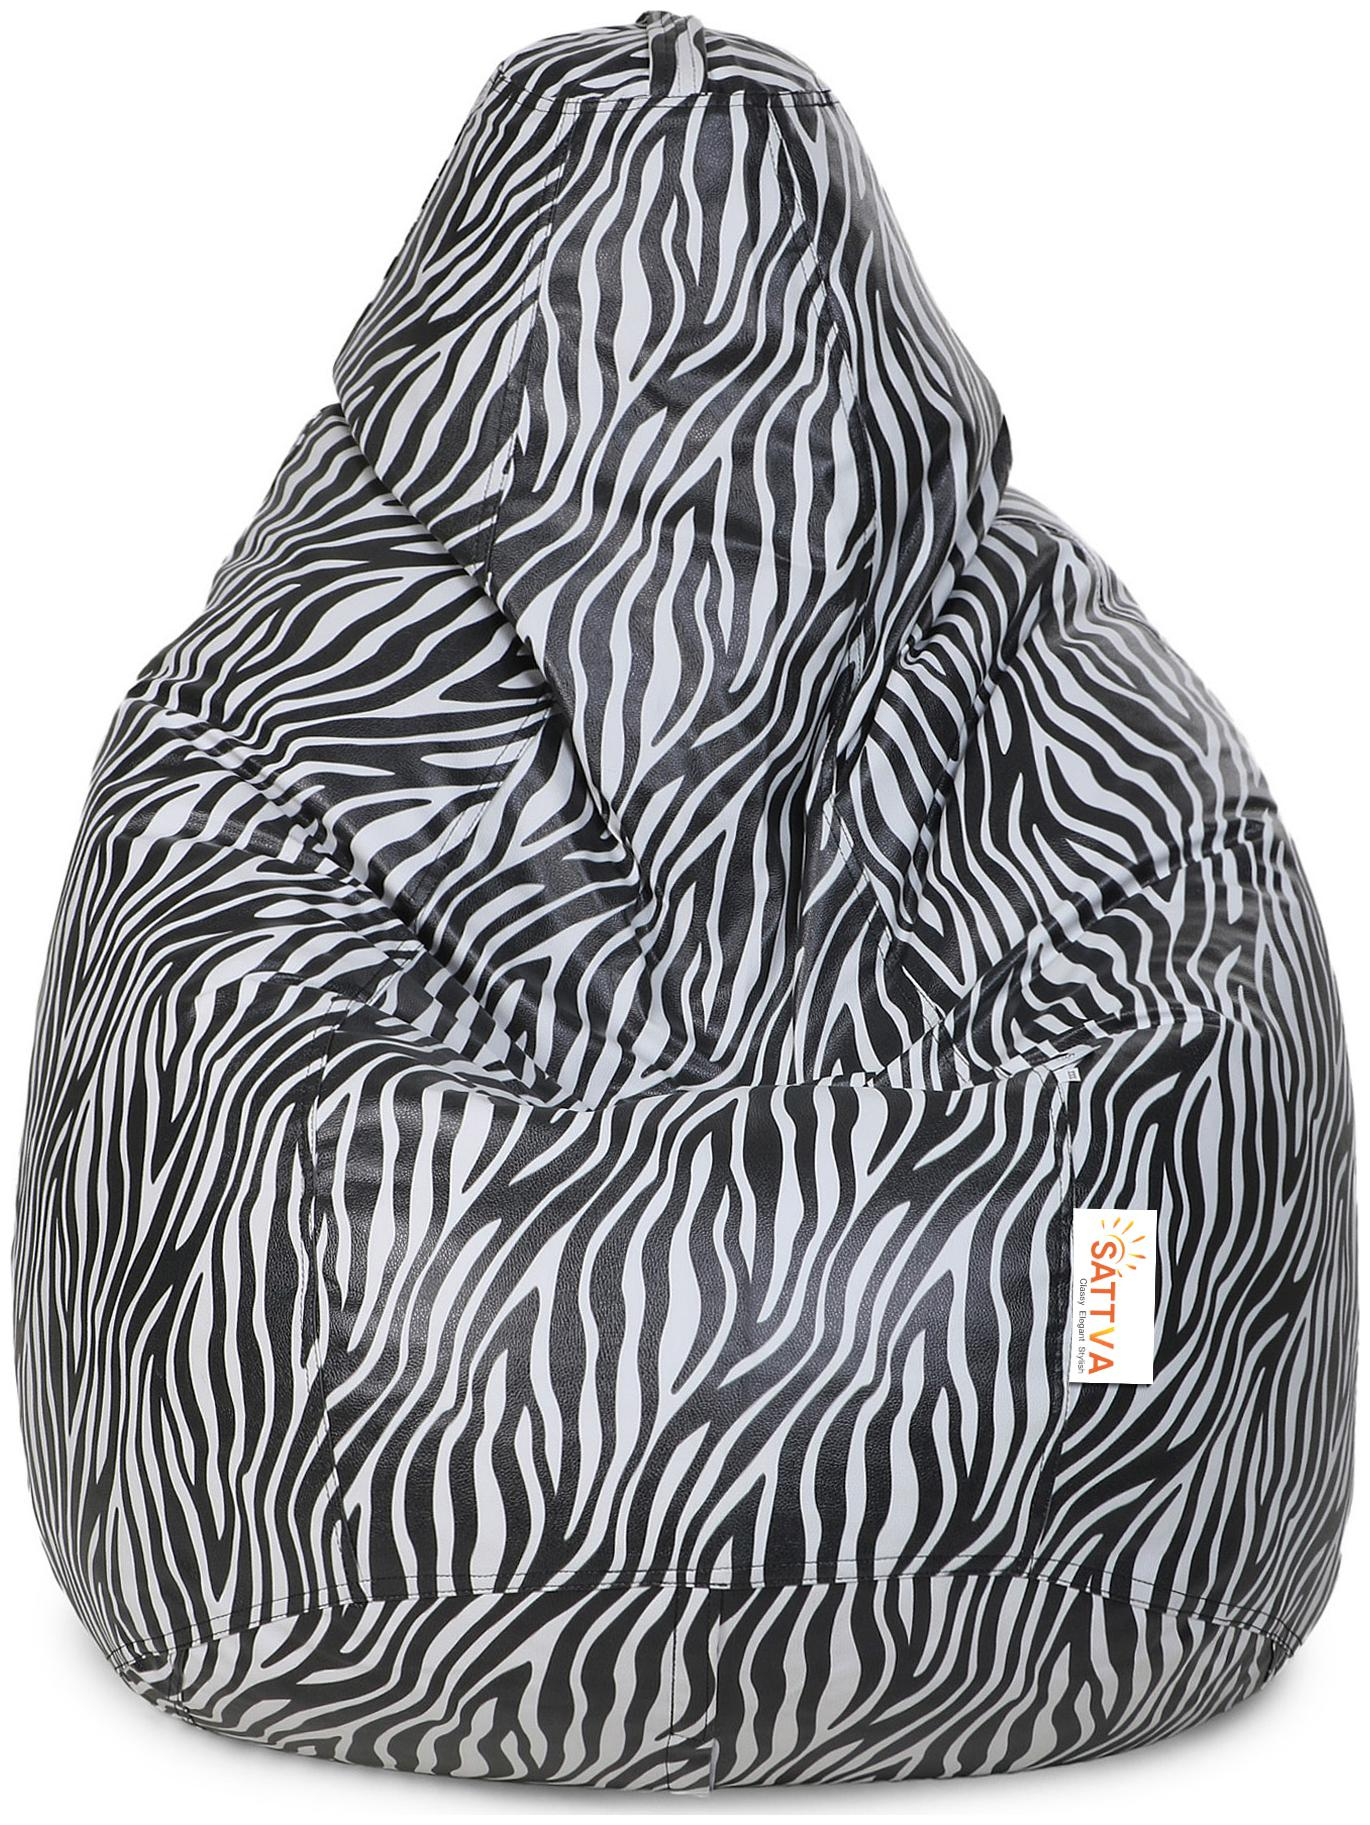 Miraculous Sattva Classic Style Zebra Print Xl Bean Bag Cover With Beans Pdpeps Interior Chair Design Pdpepsorg